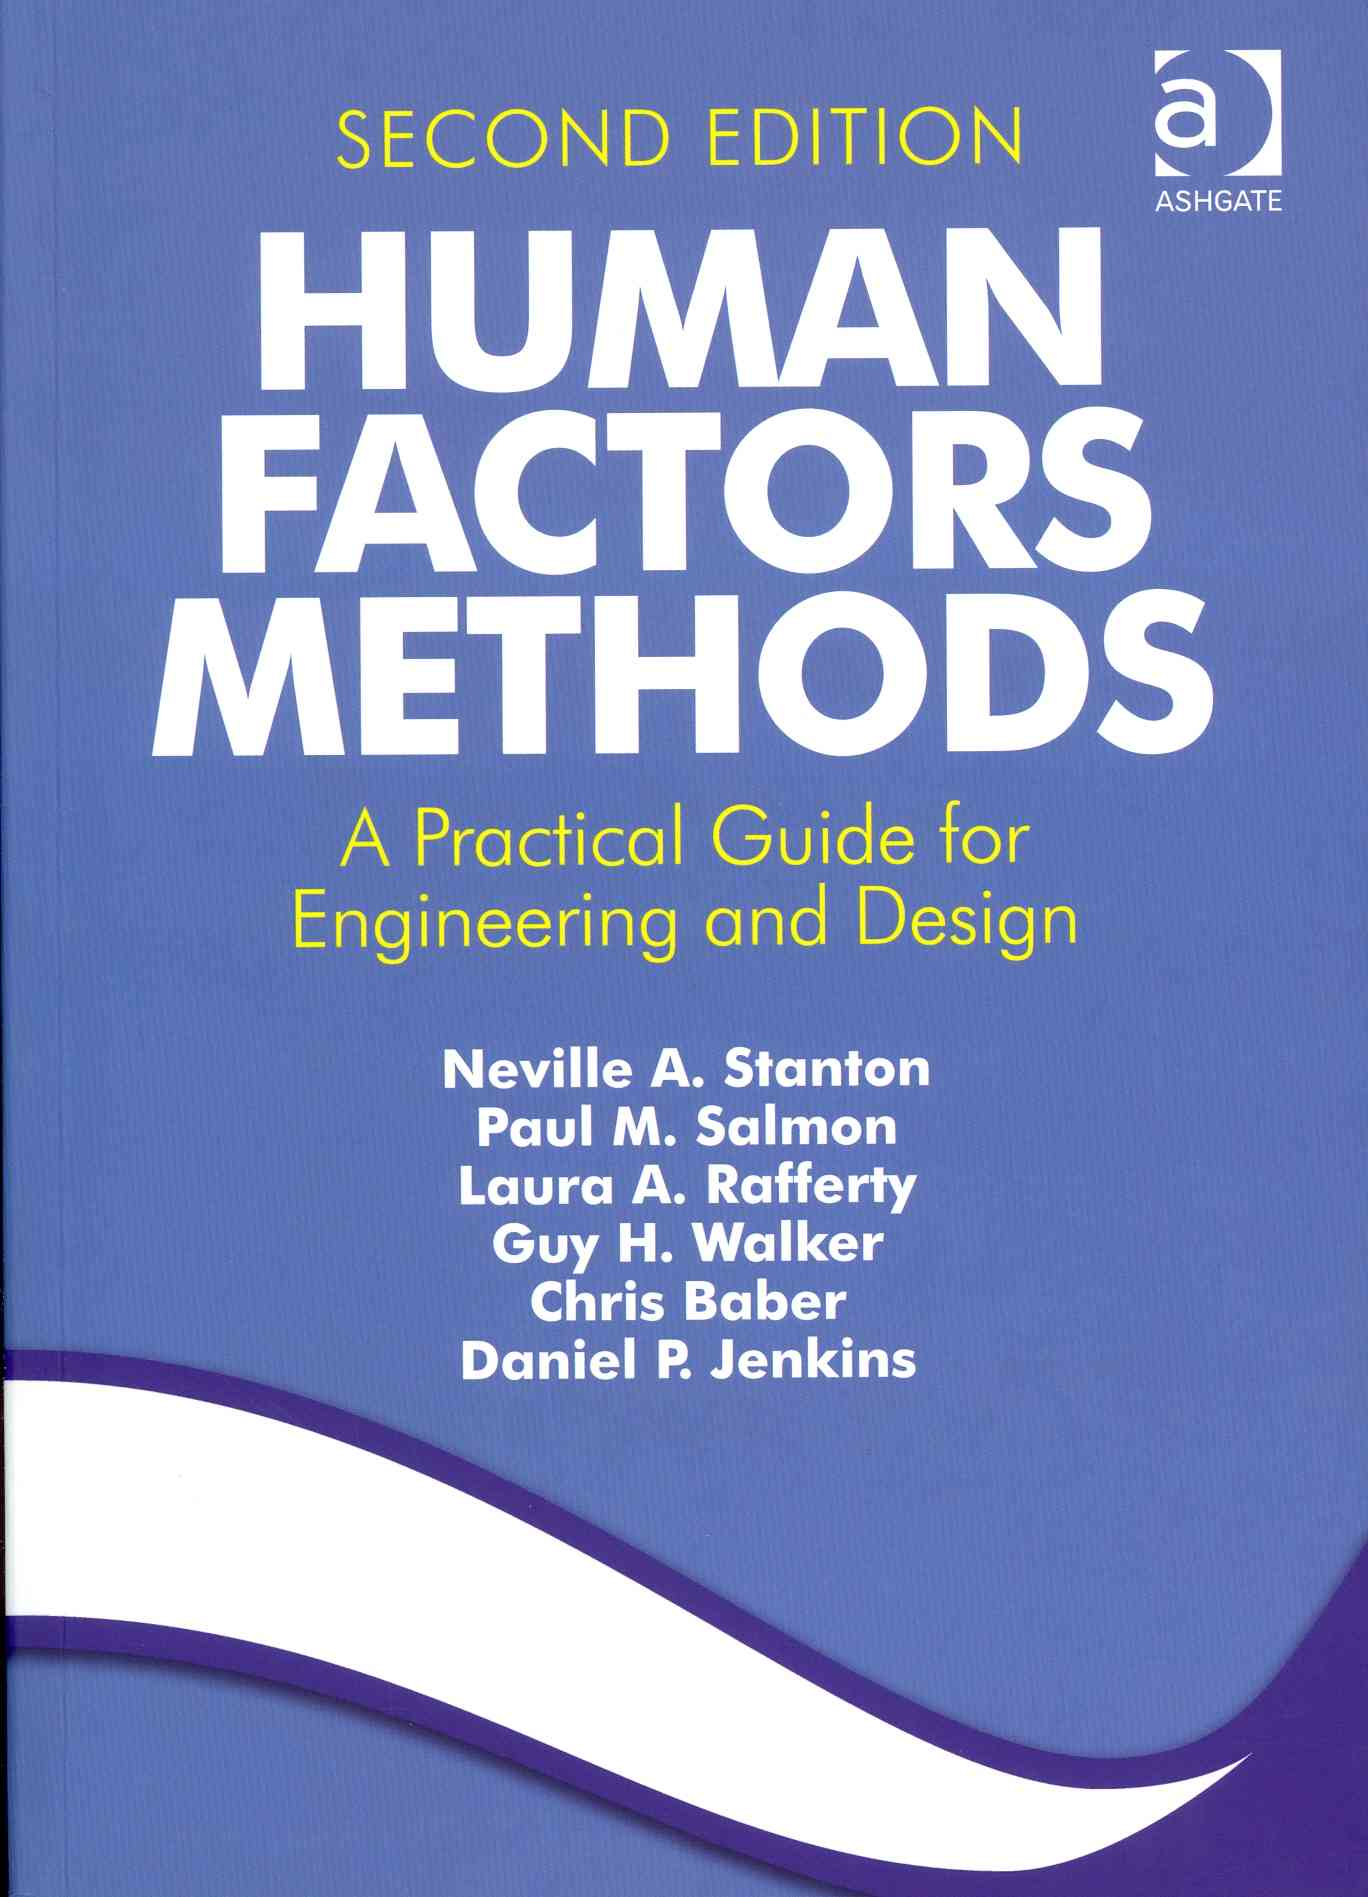 Human Factors Methods By Stanton, Neville A./ Salmon, Paul M./ Rafferty, Laura A.